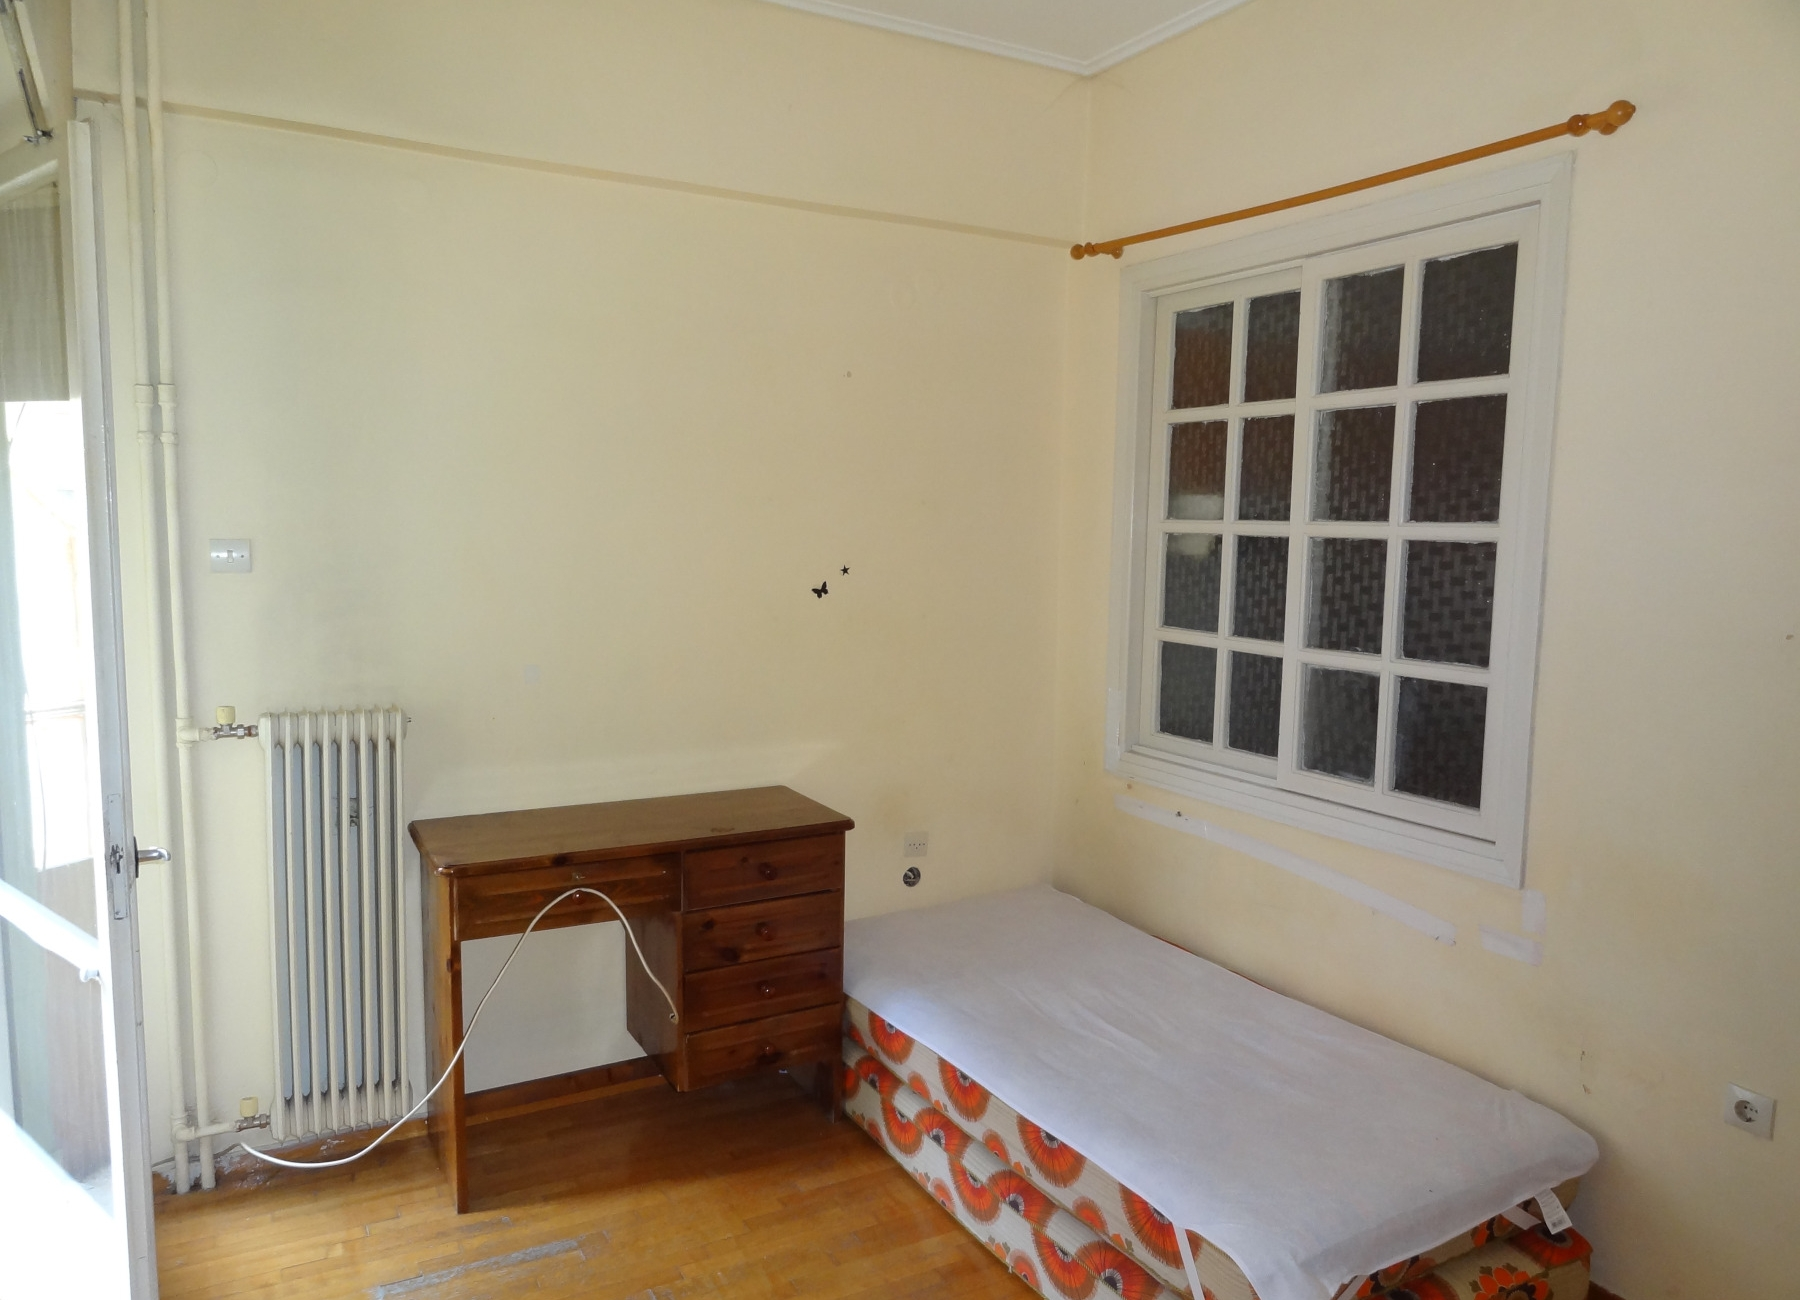 For rent two-rooms studio of 25 sq.m. 3rd floor in the area of the stadium near the center of Ioannina